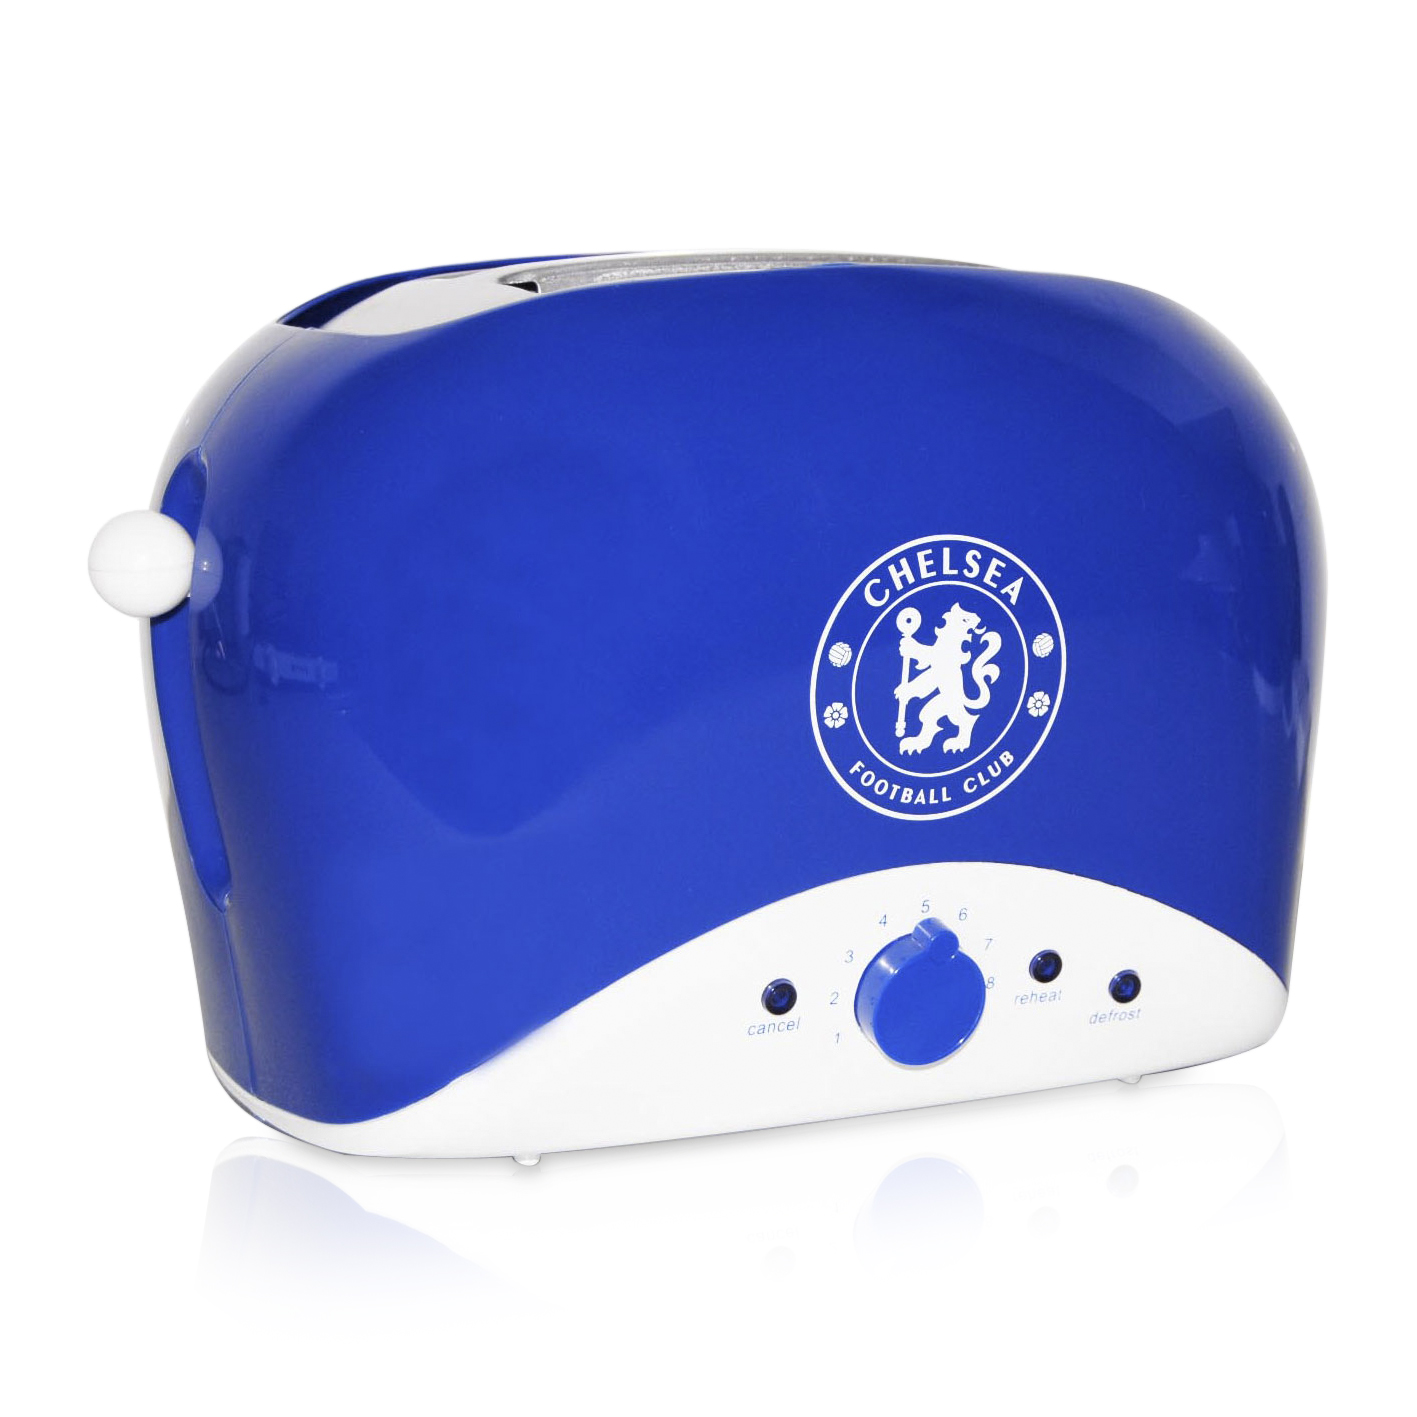 Chelsea Crested Toaster